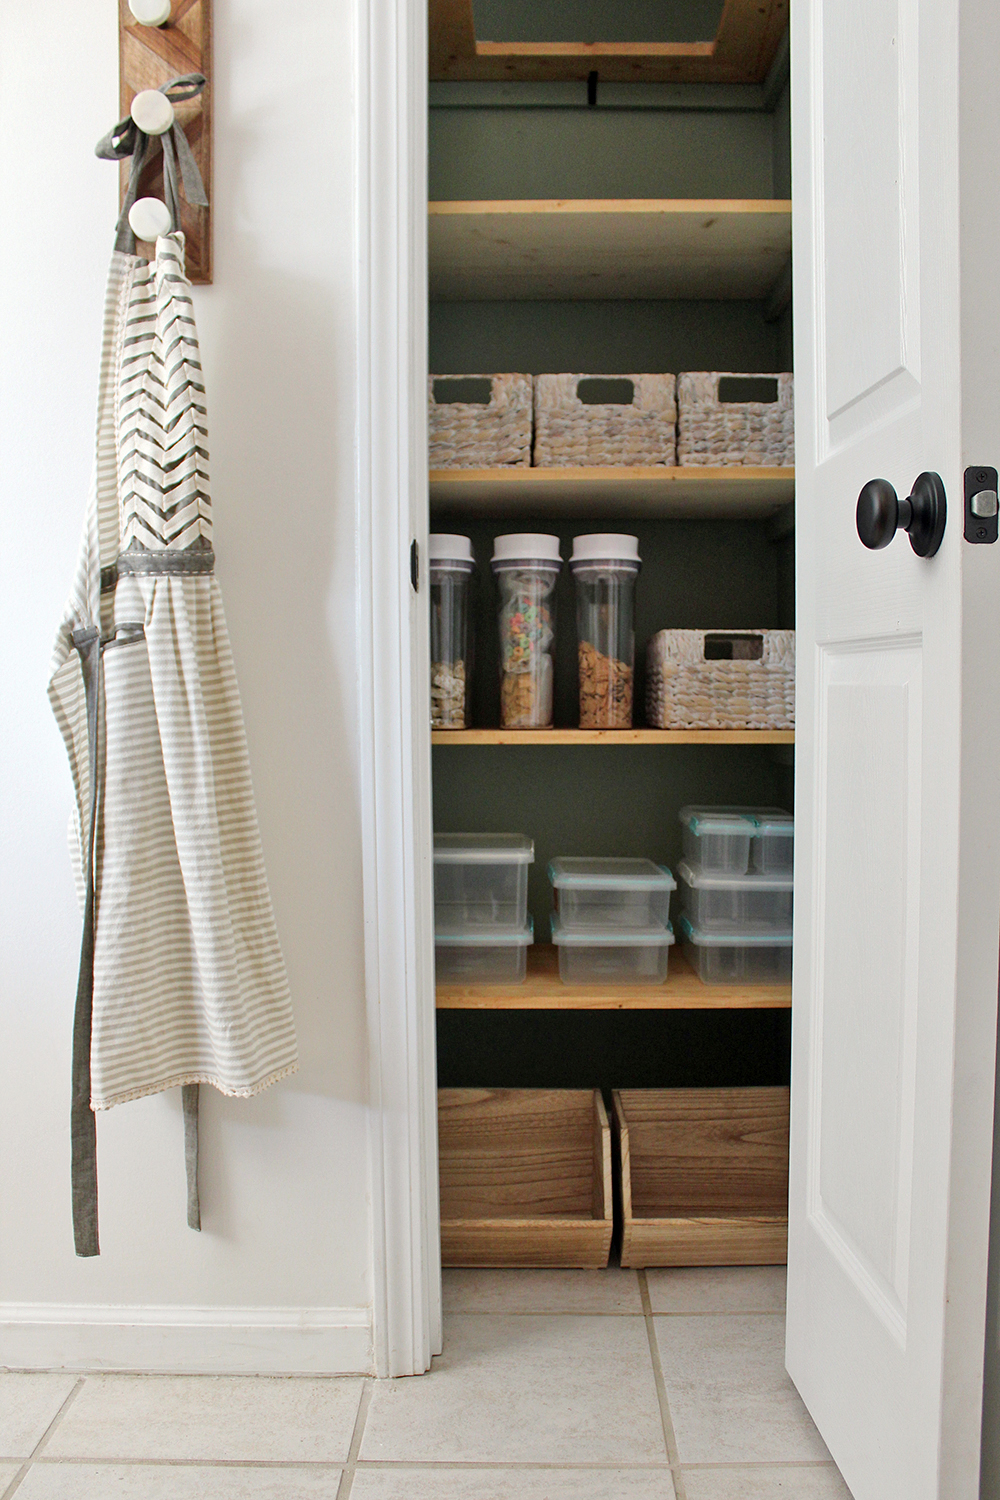 ready to put food on the shelf with new organization